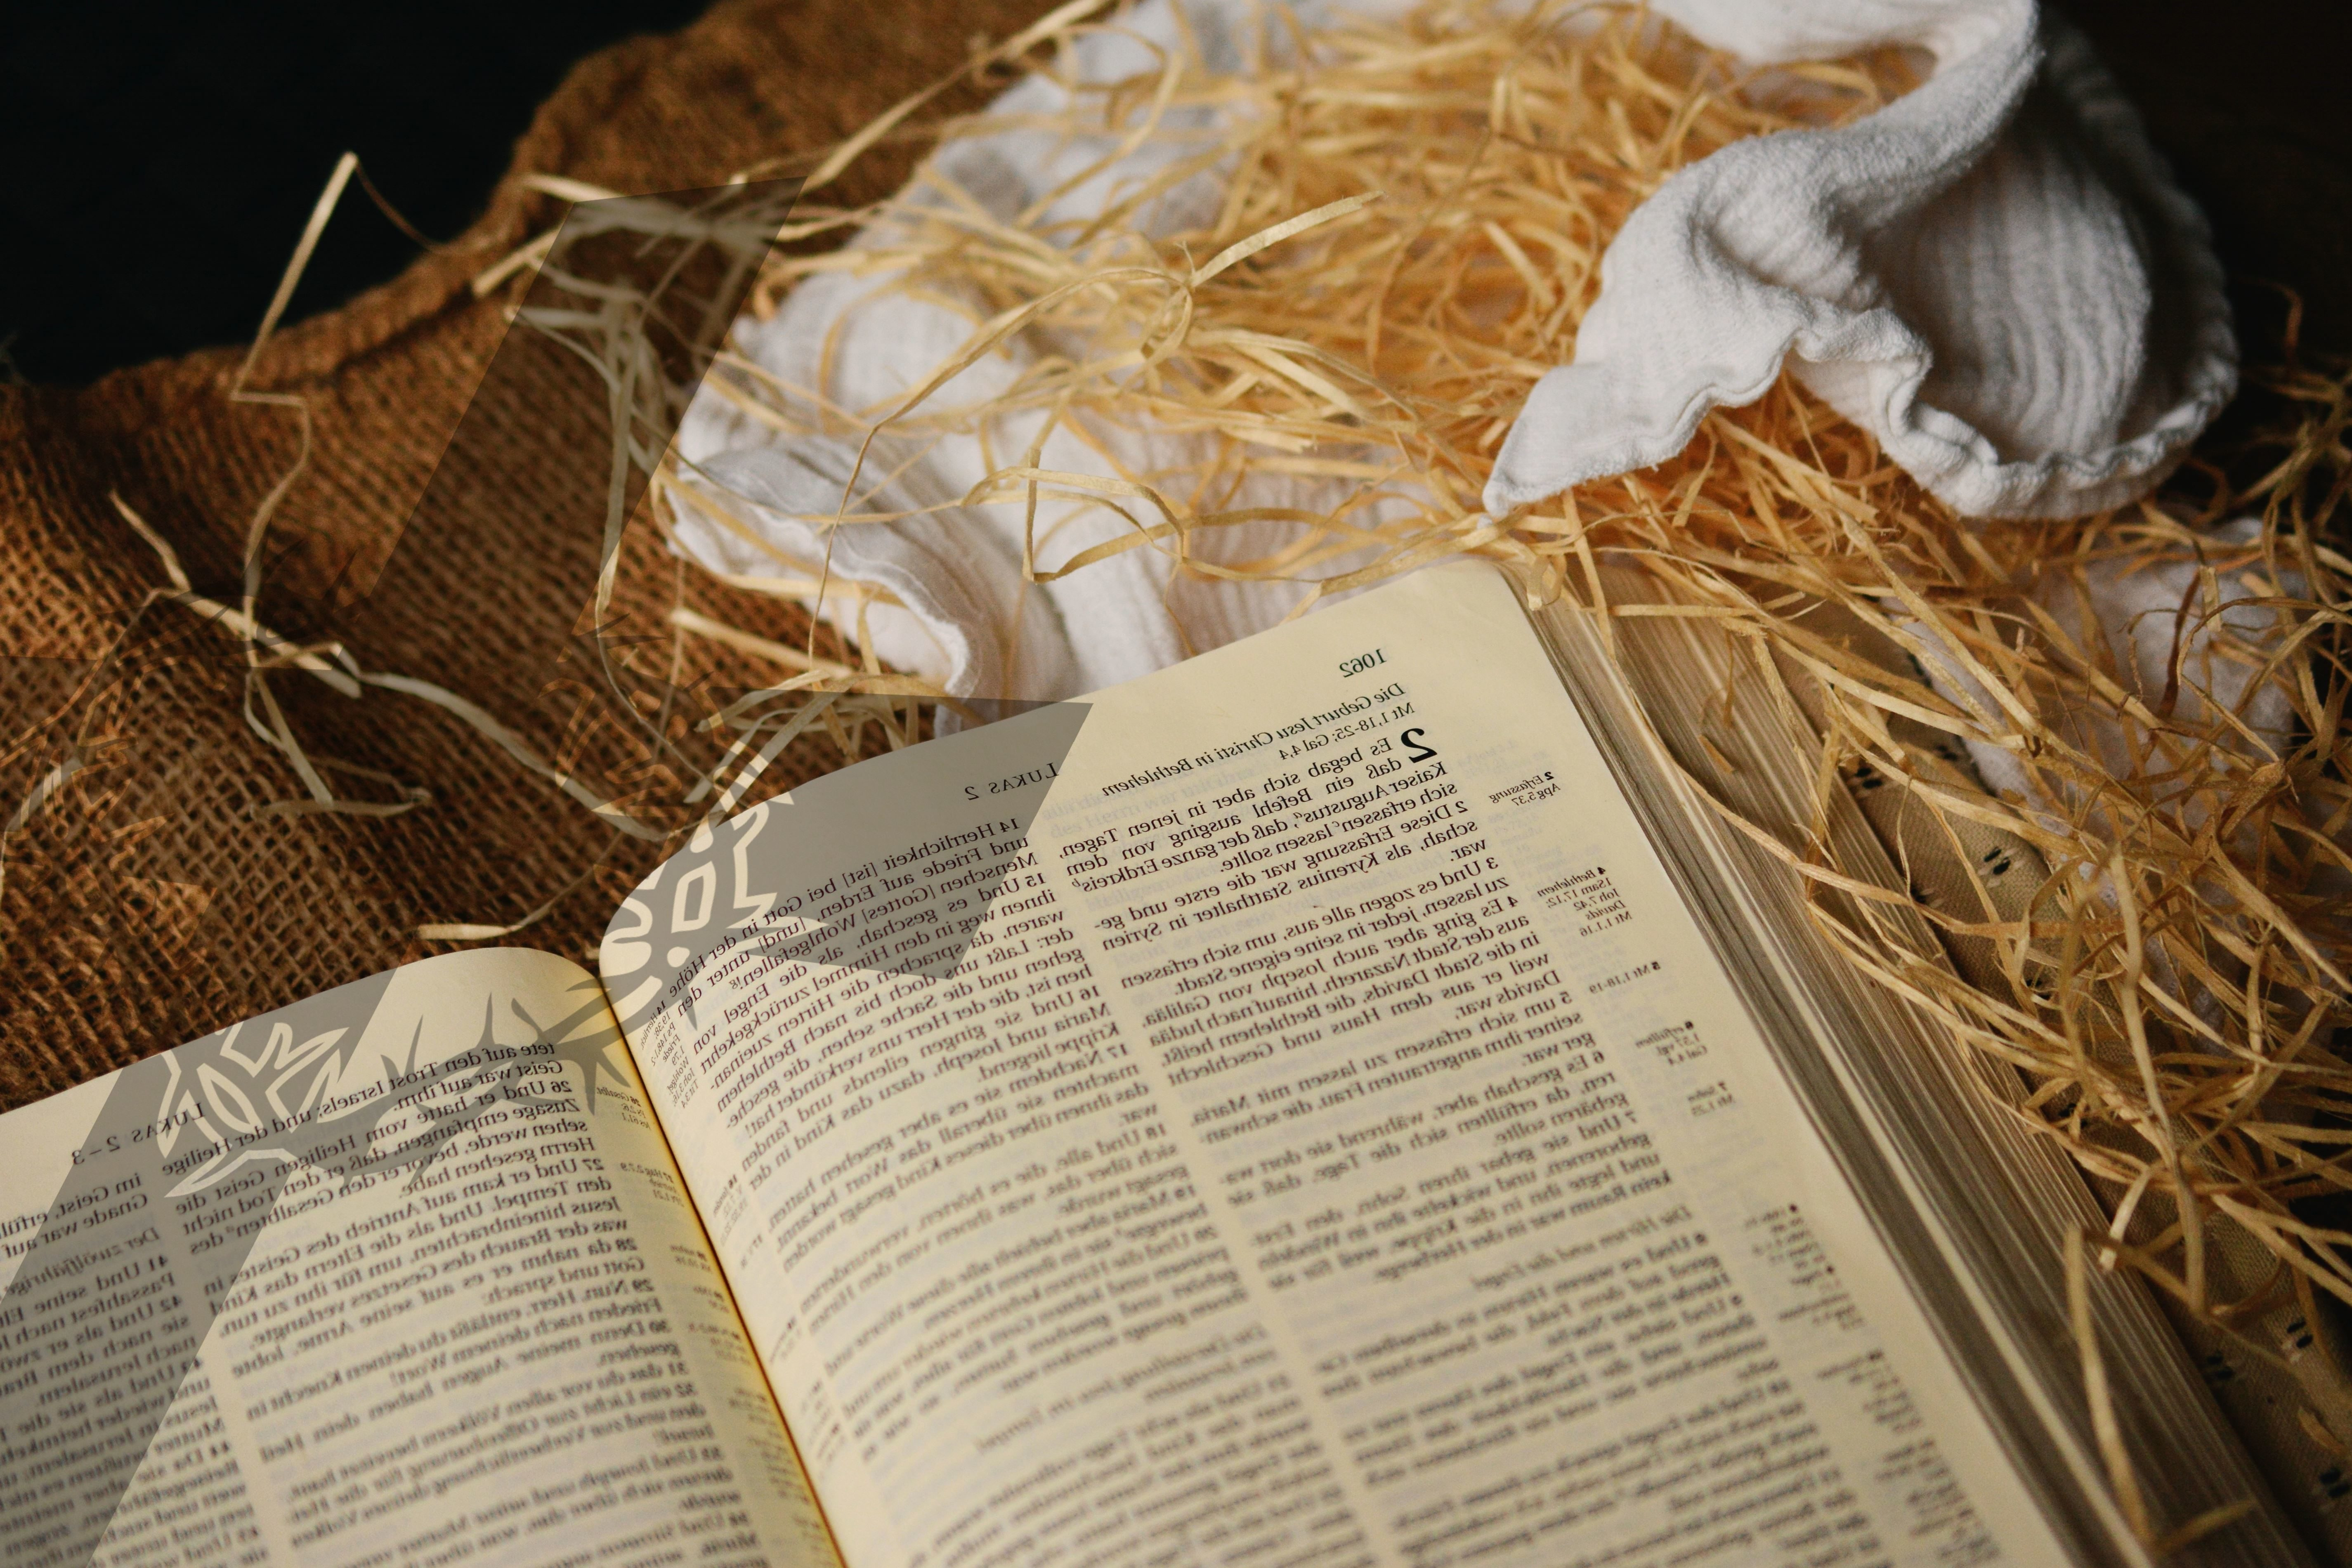 Free picture bible book business straw text